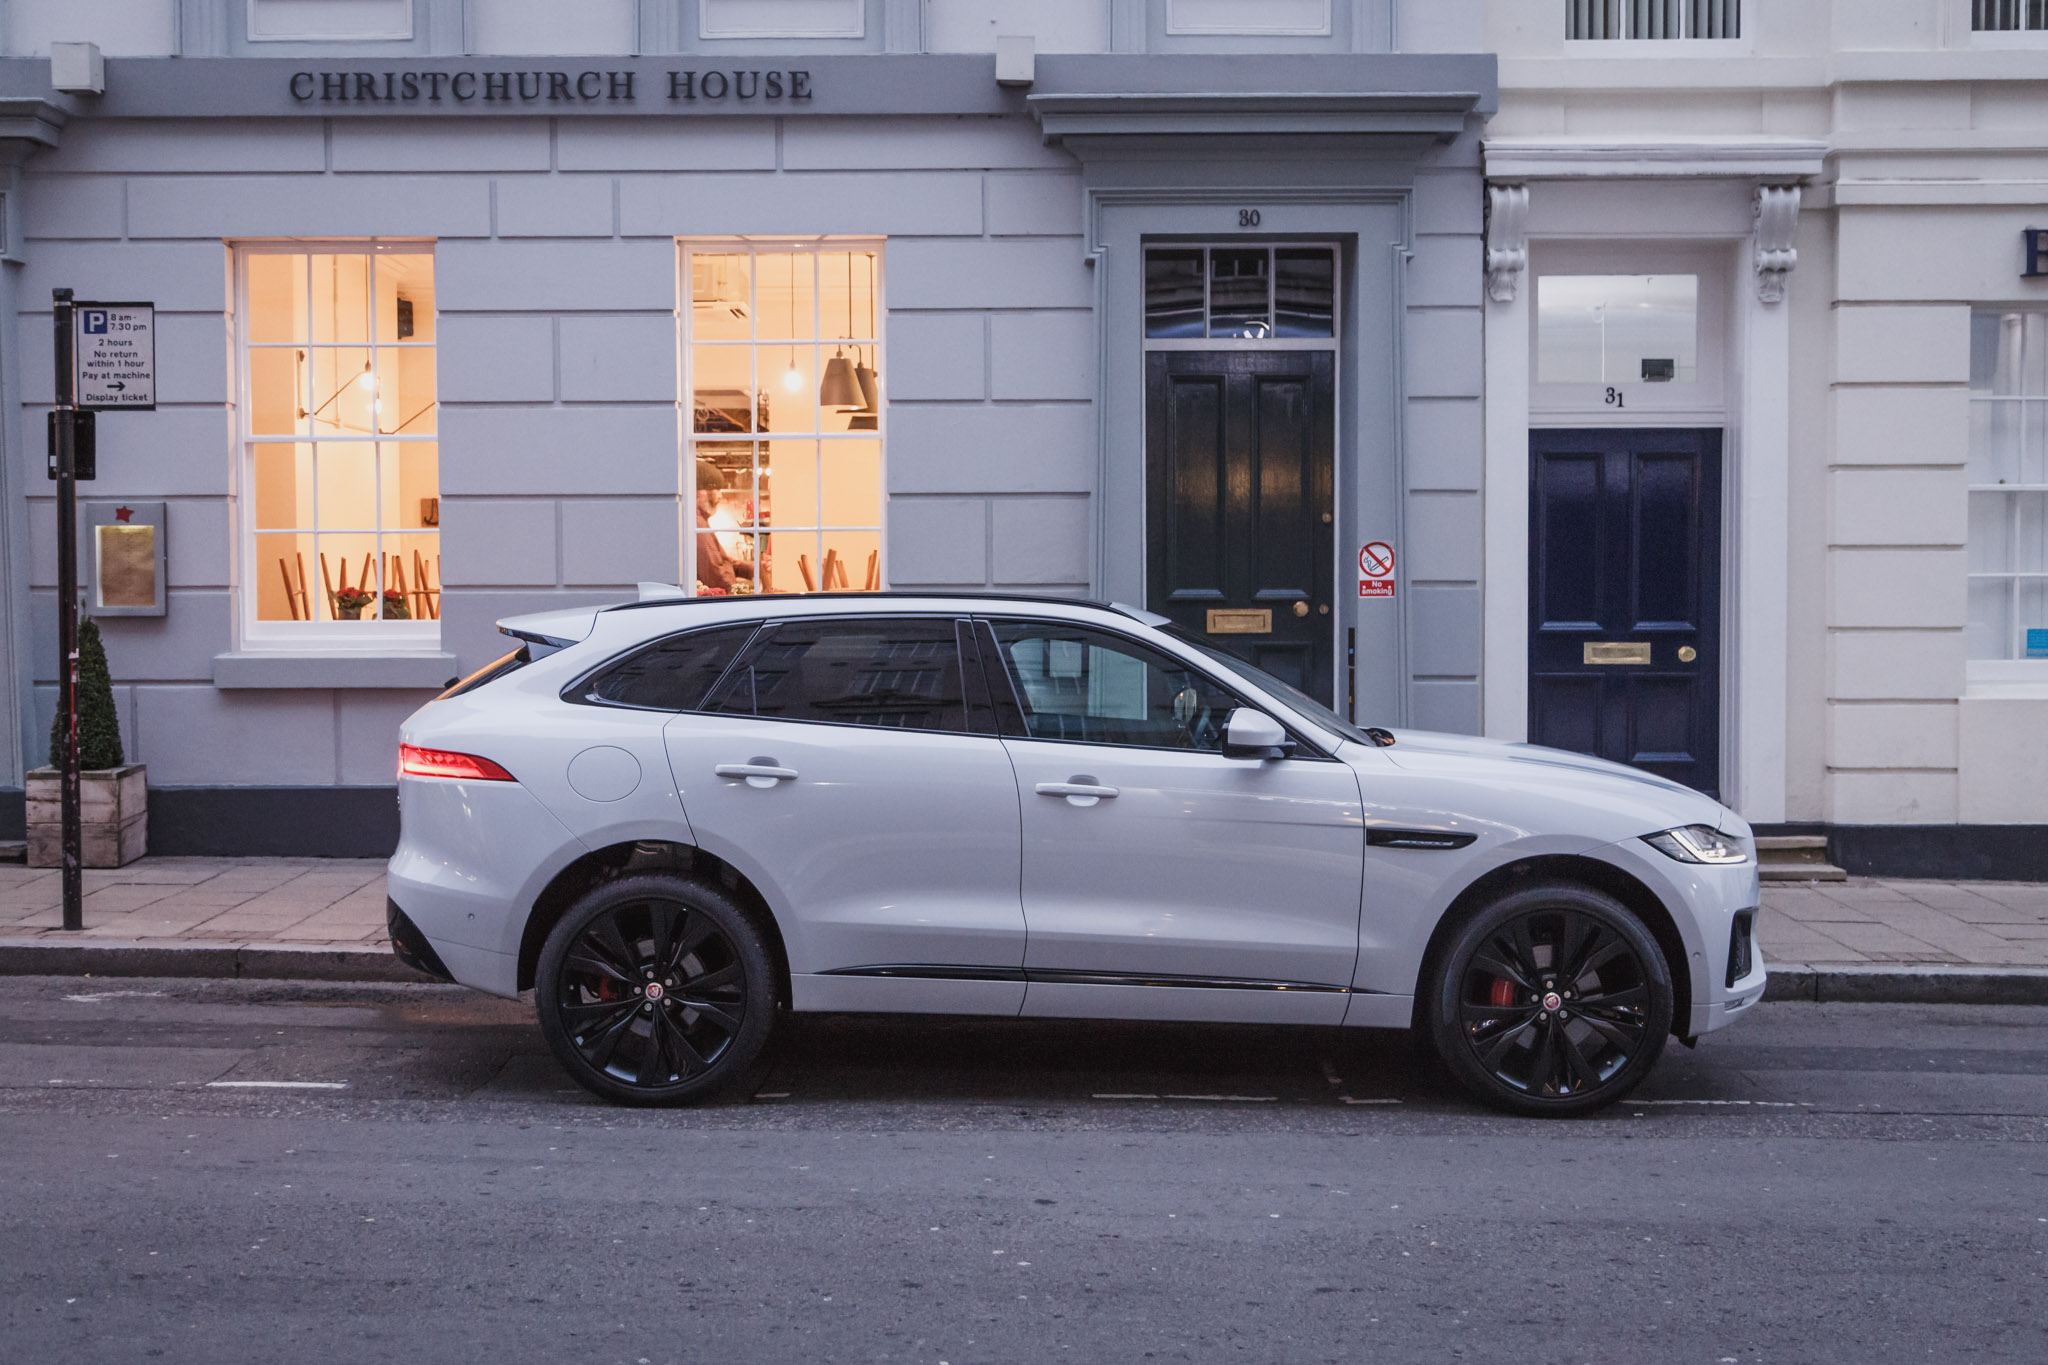 2016 jaguar f-pace s review - practical, capable and good performer